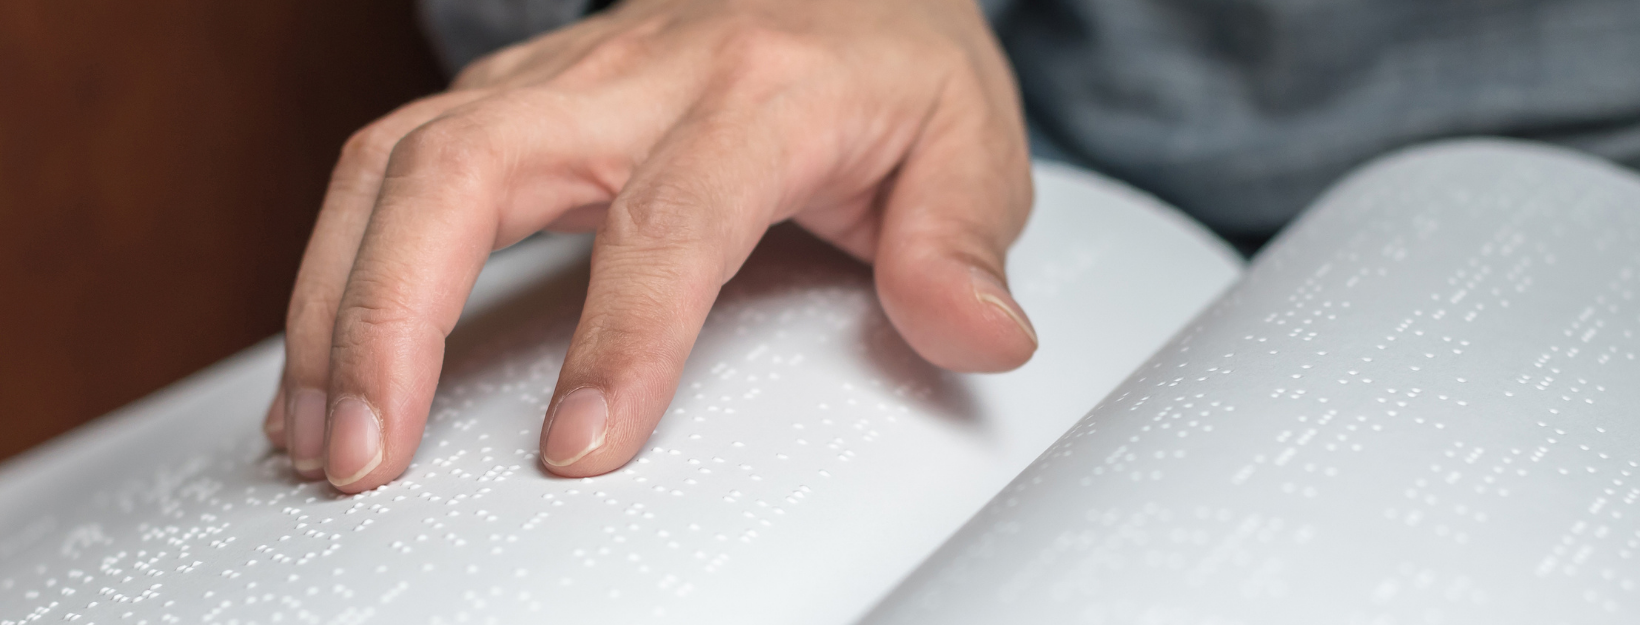 close up of a white man's fingers reading book in Braille